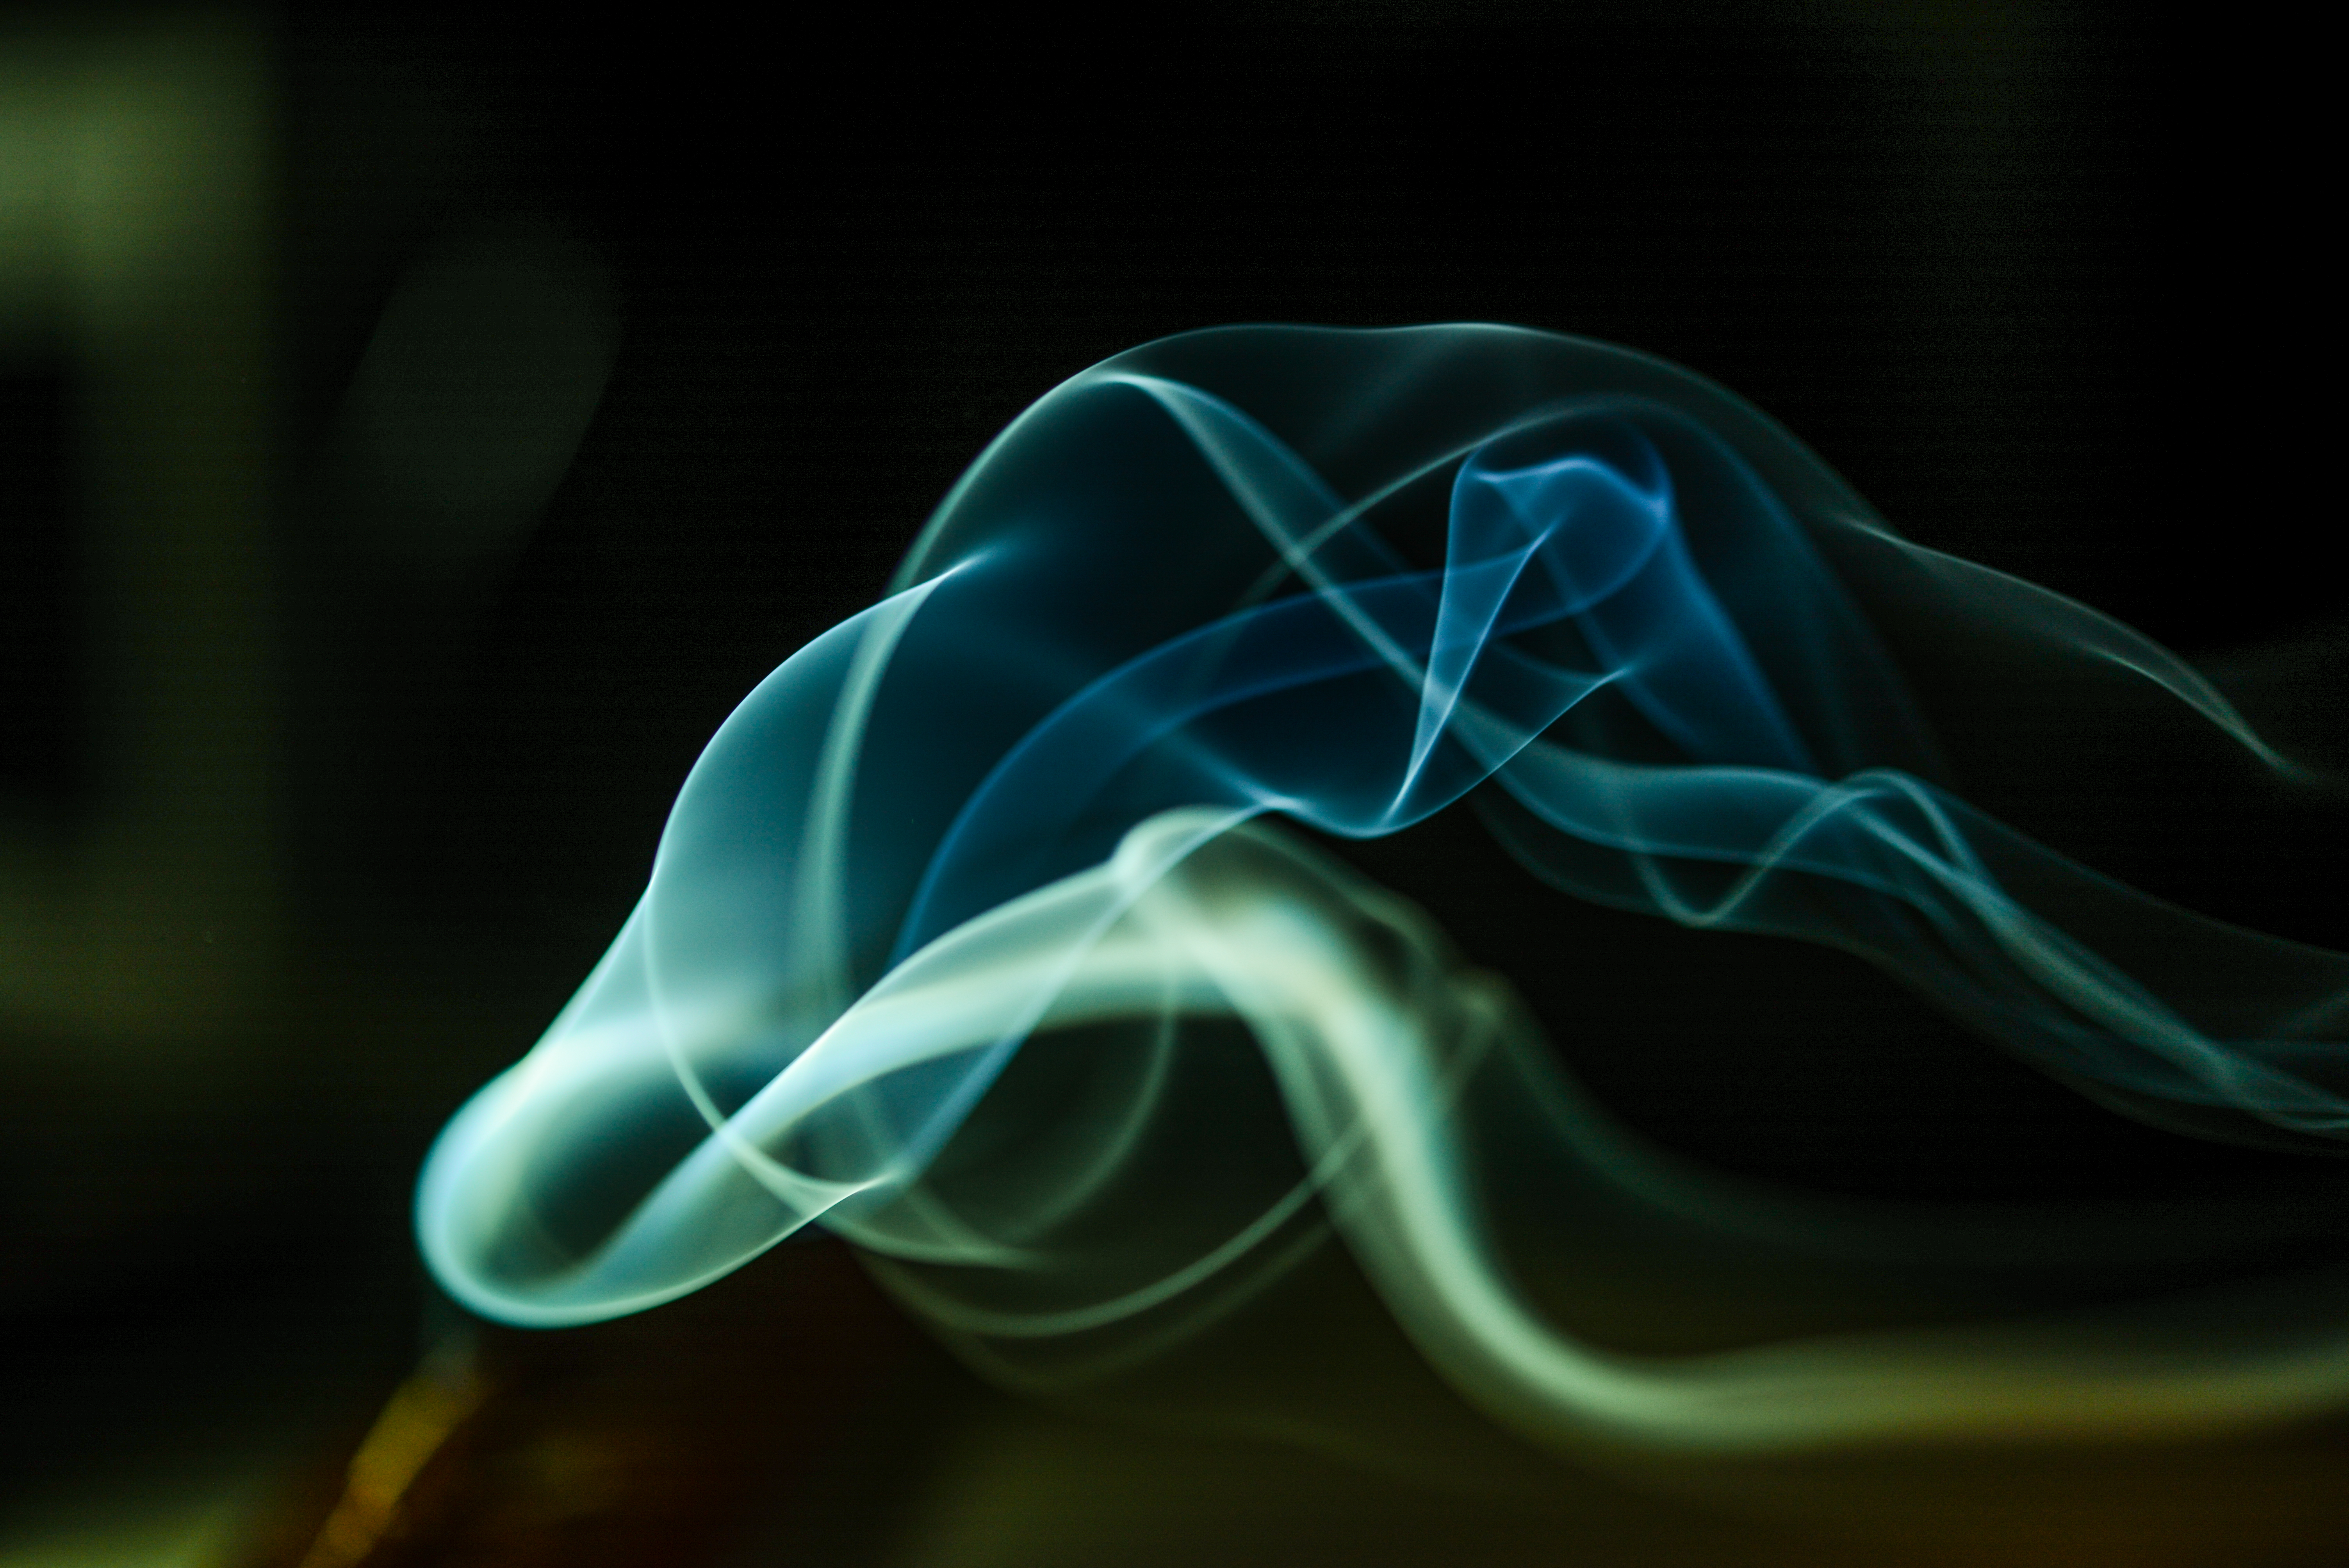 120088 download wallpaper Abstract, Wavy, Black Background, Smoke screensavers and pictures for free